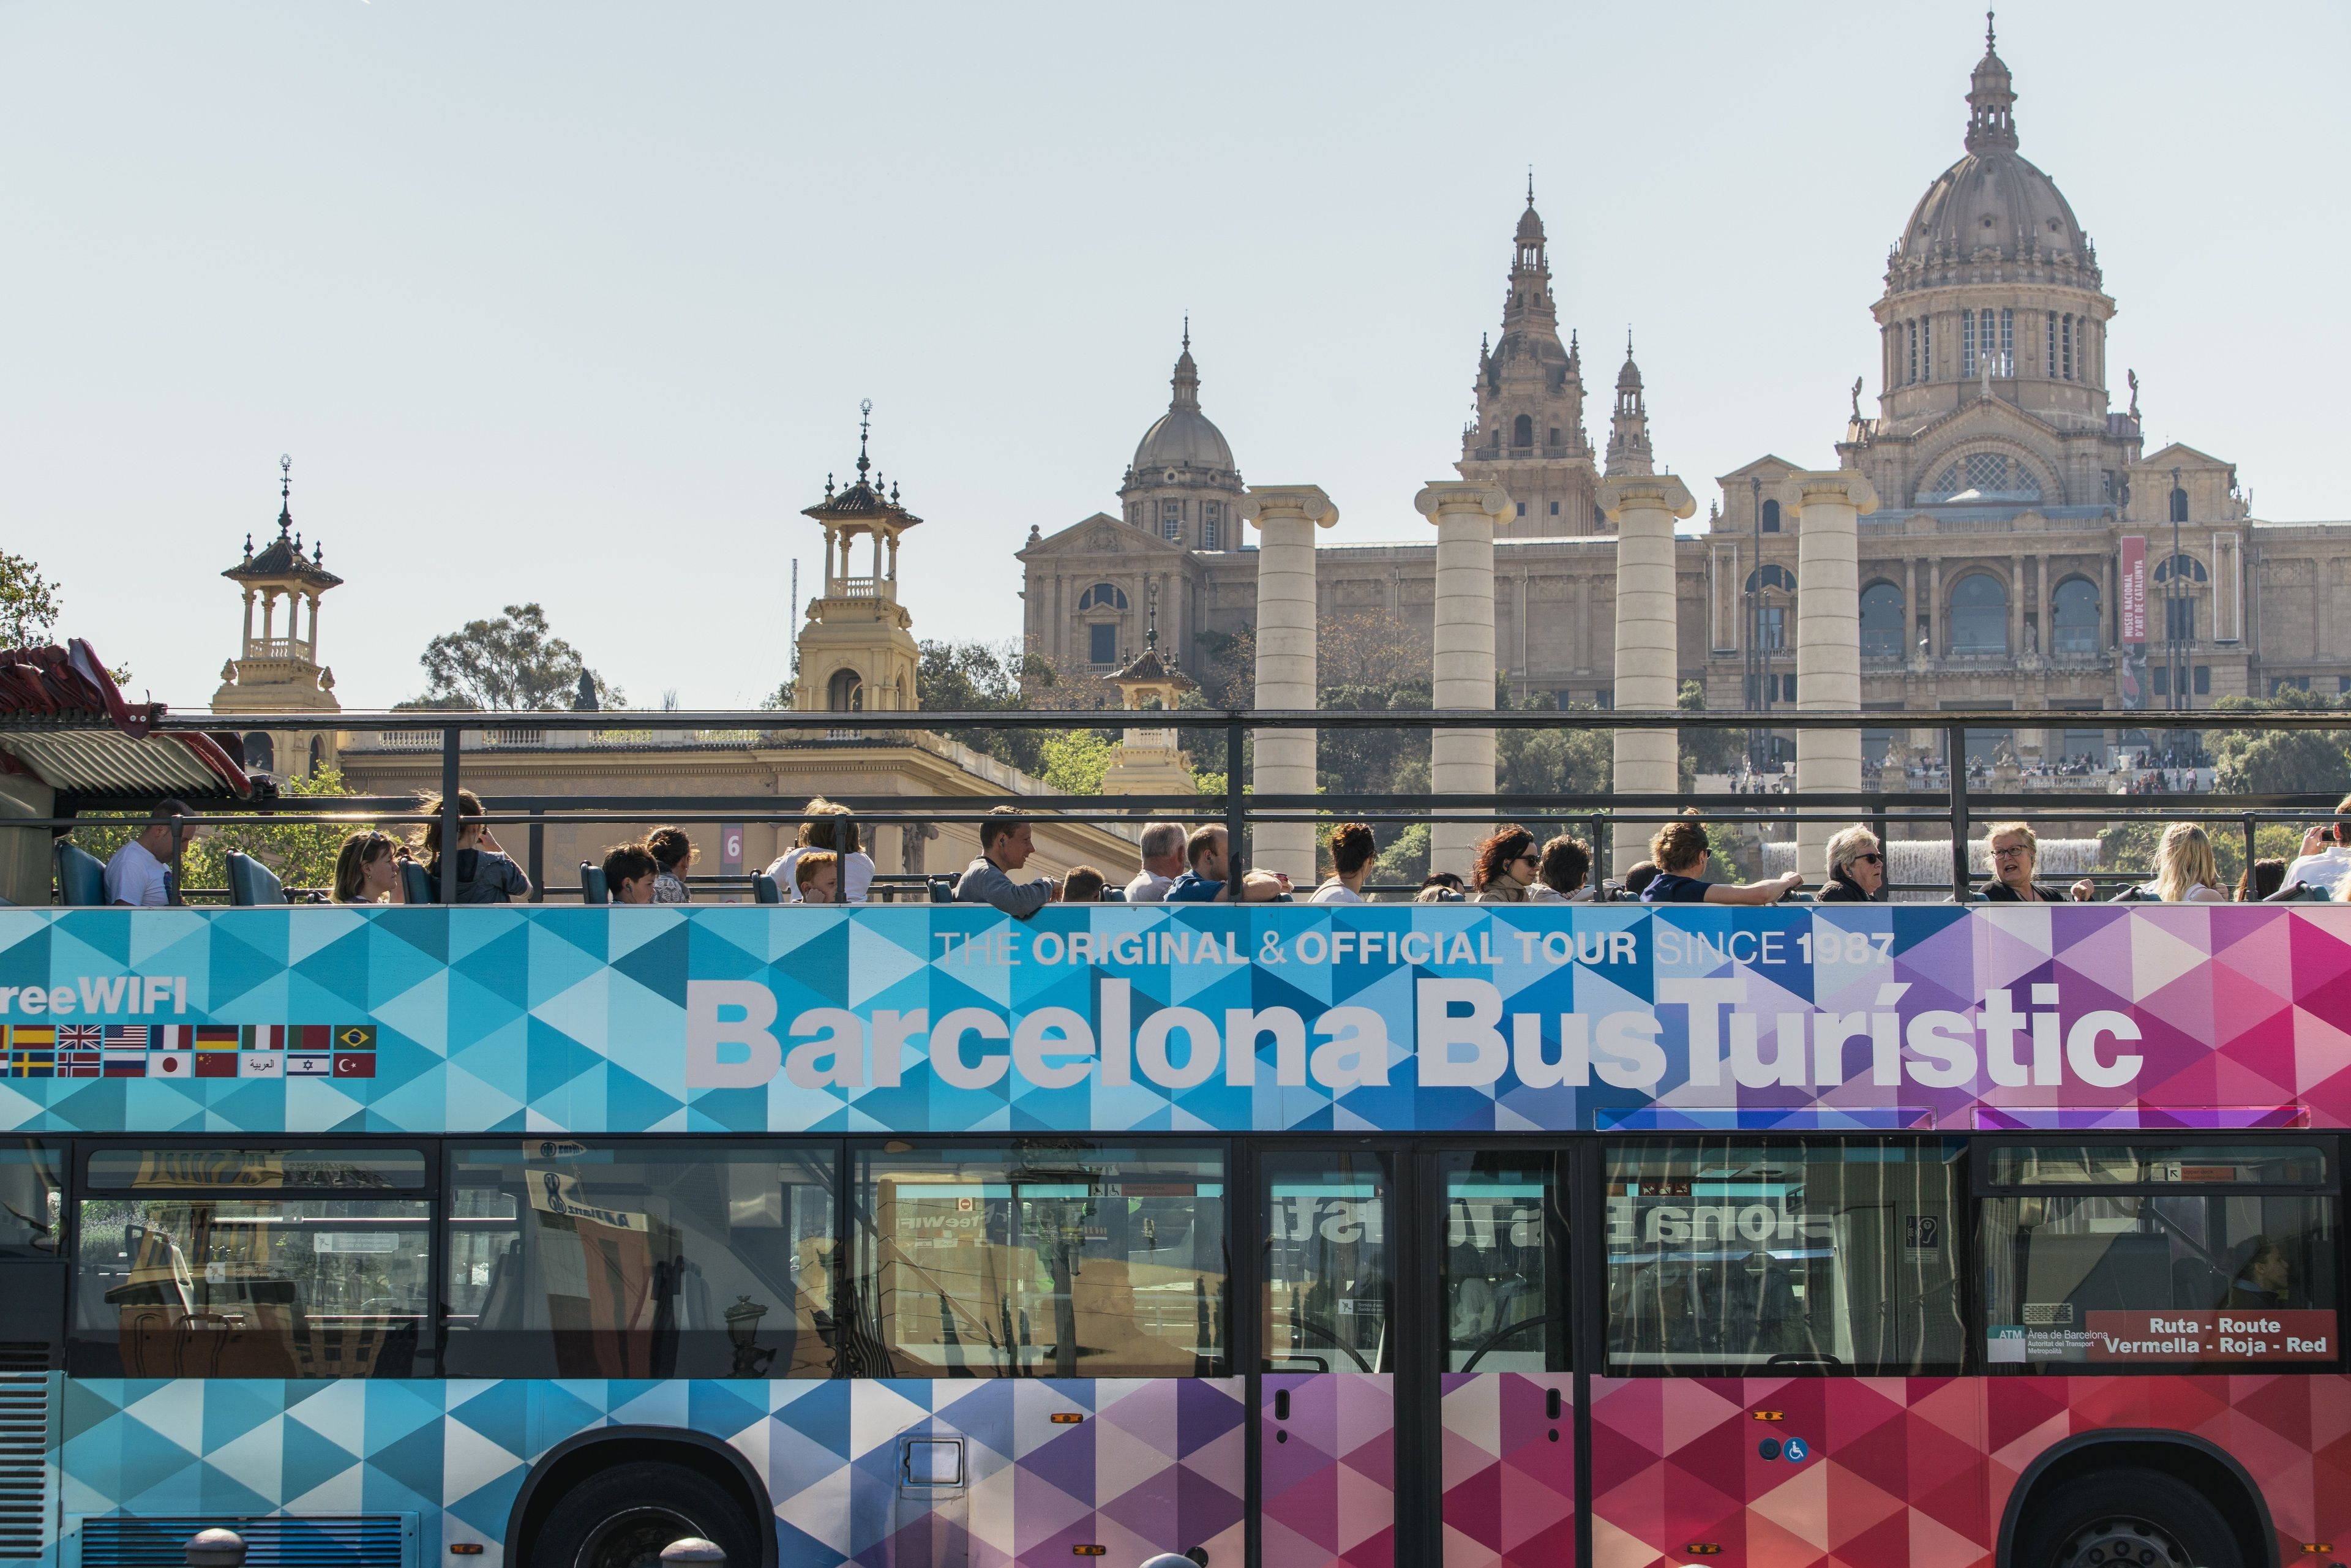 Tour in autobus hop-on hop-off organizzato da Bus Turistic di Barcellona